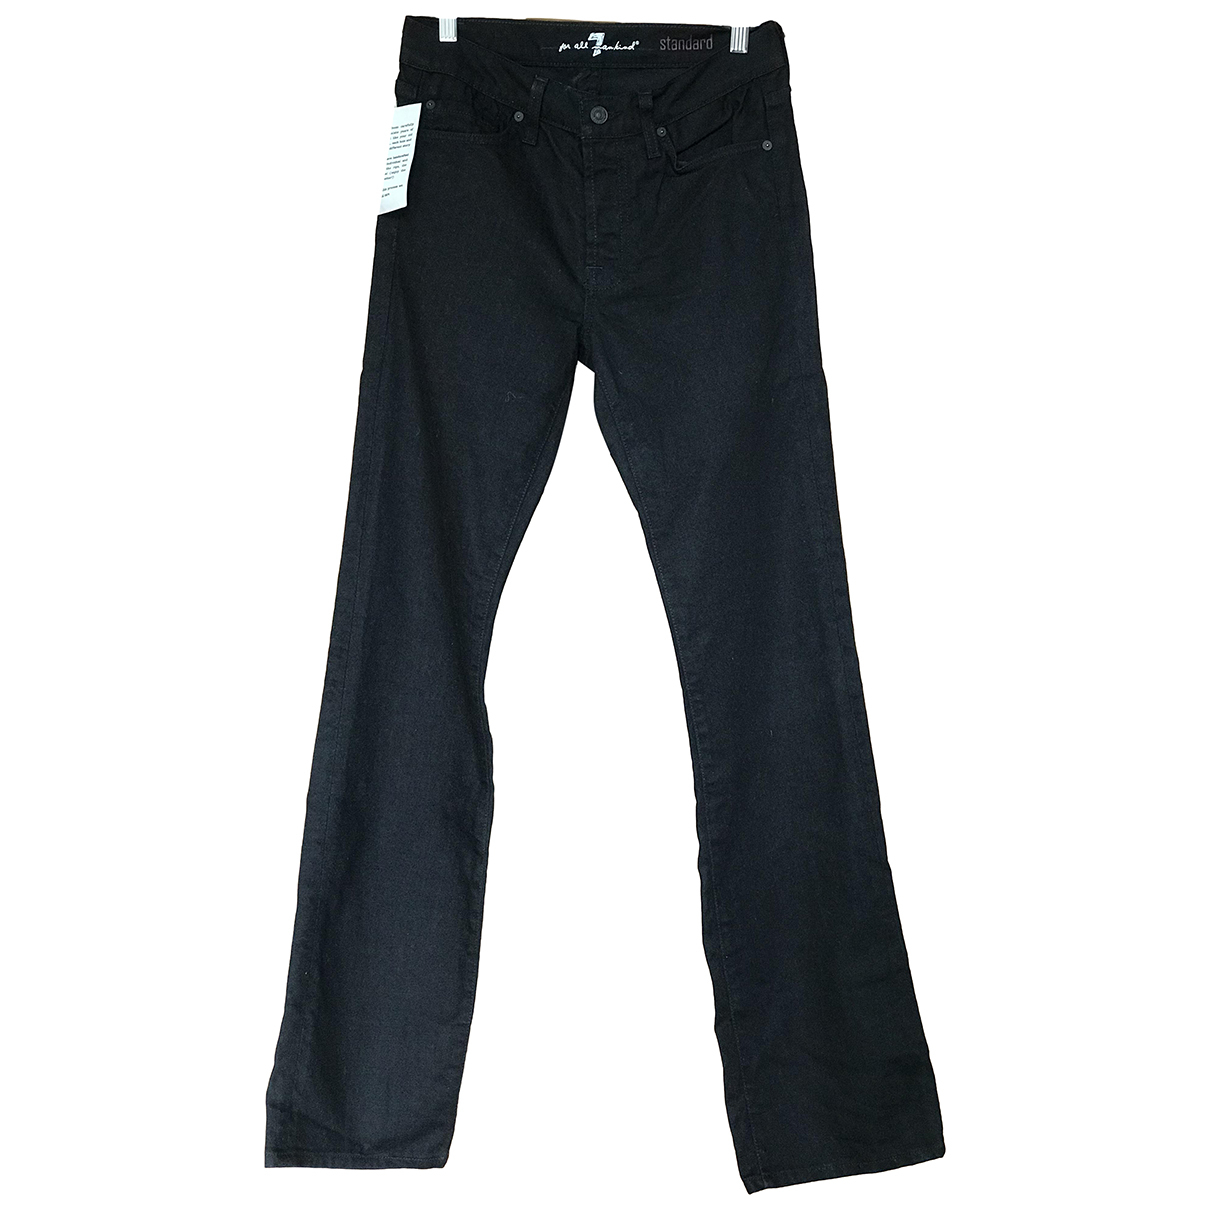 7 For All Mankind N Black Cotton - elasthane Jeans for Women 29 US